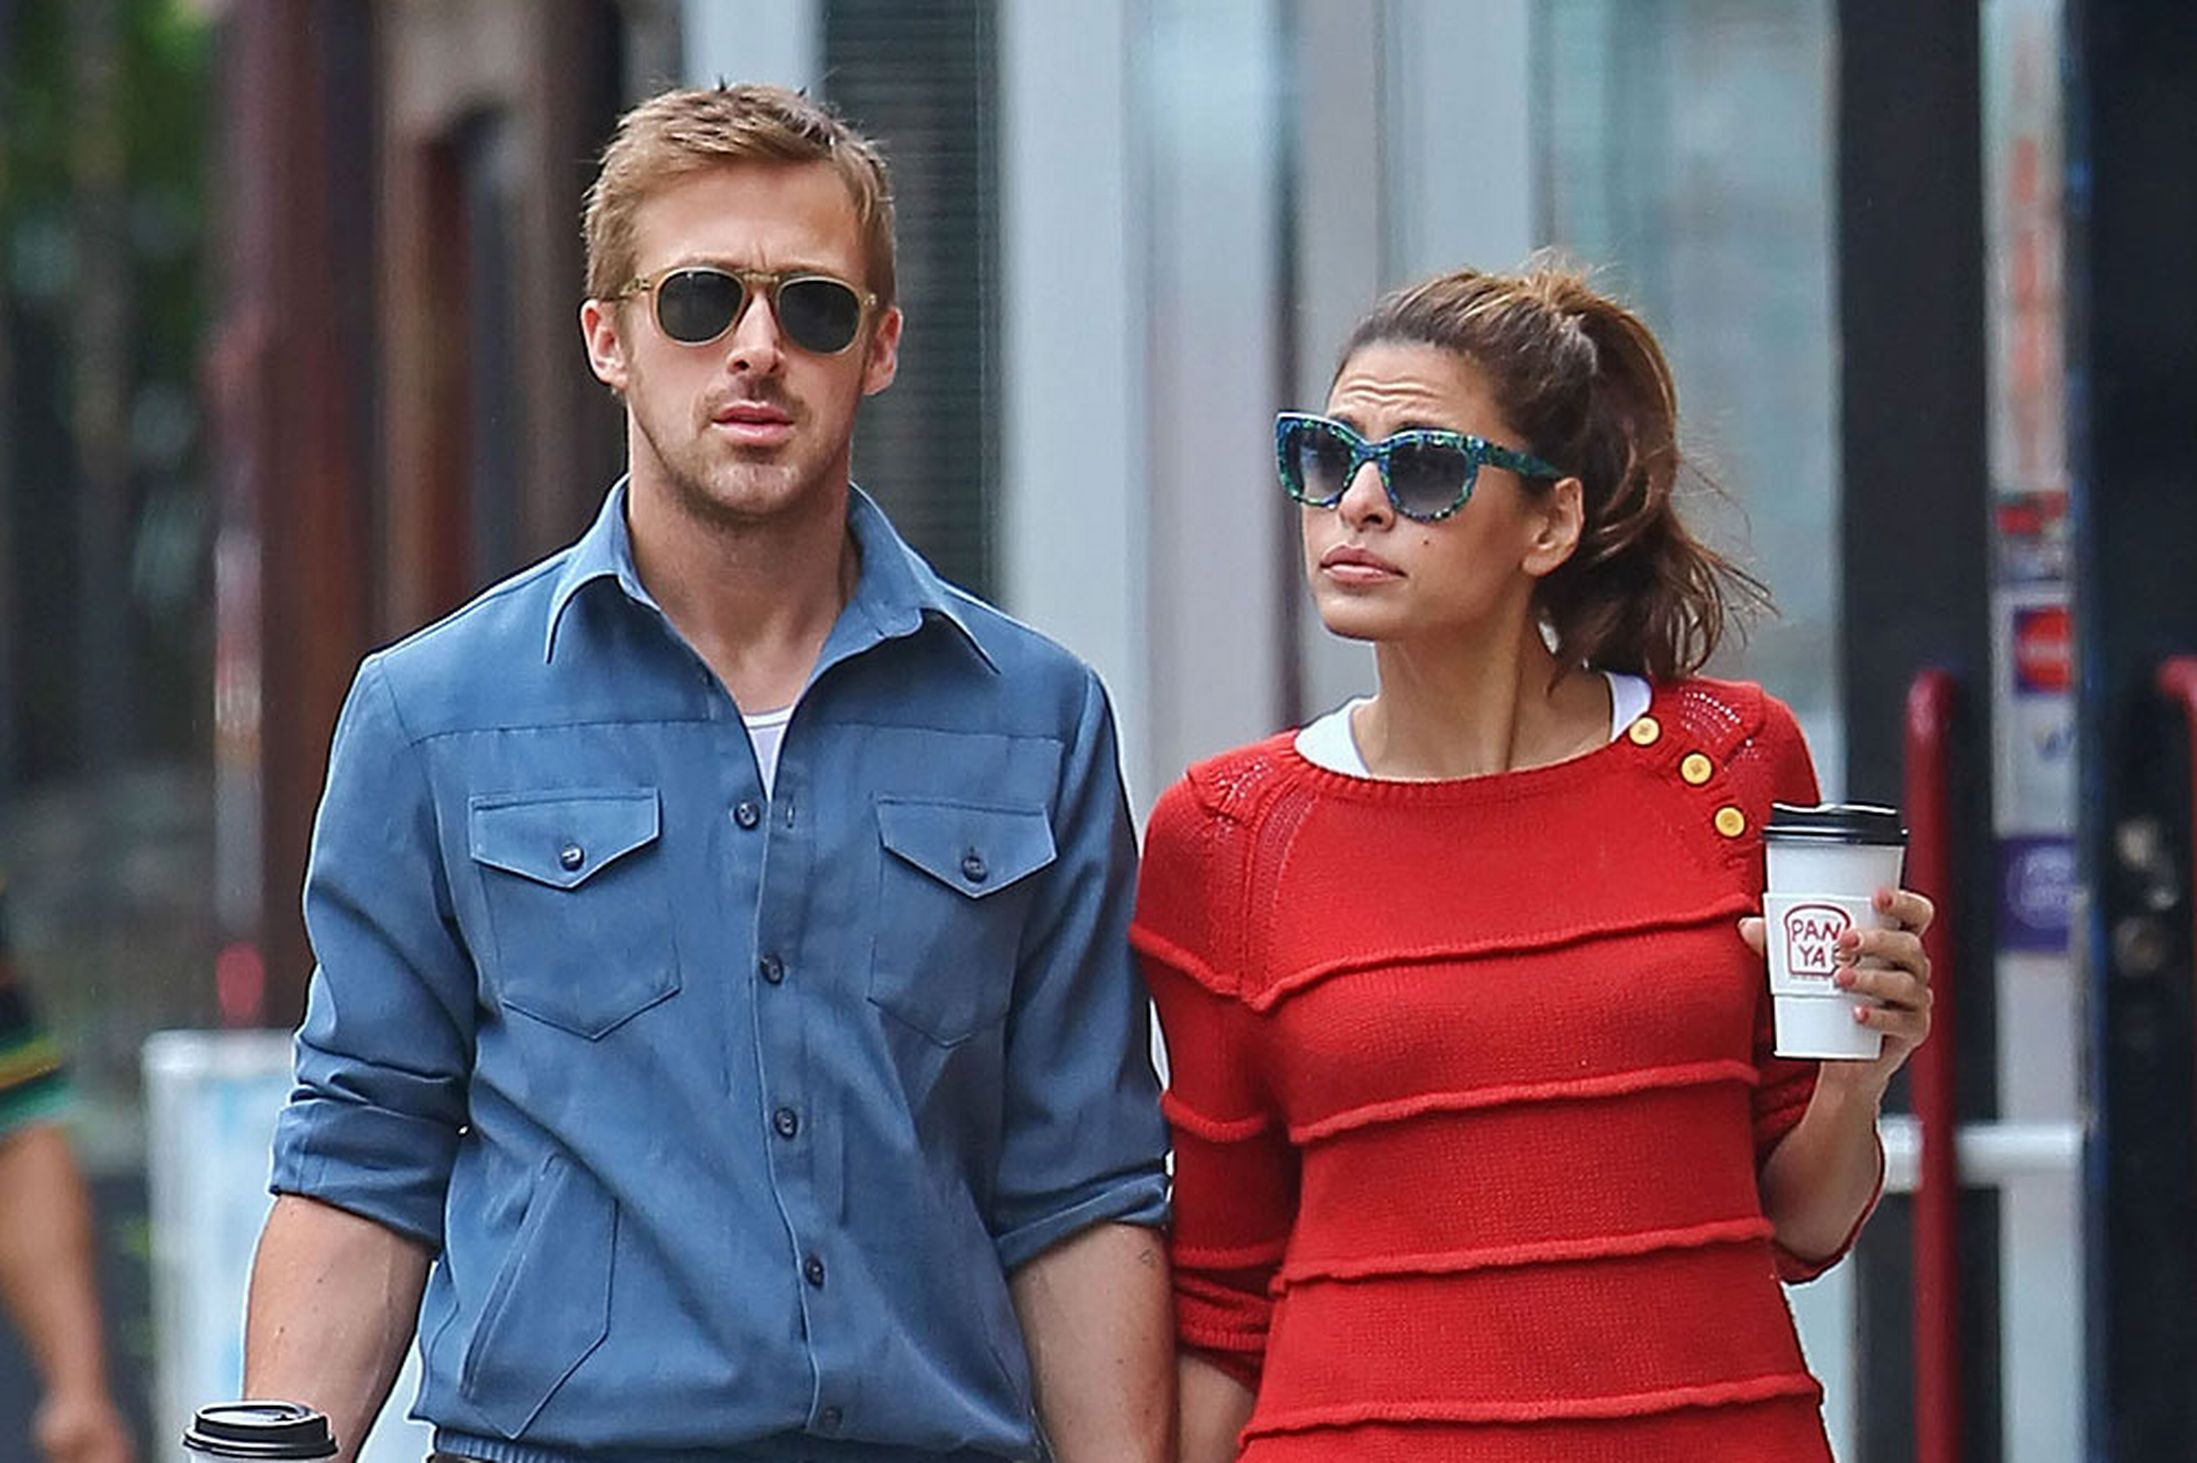 star-24-tv-eva-mendes-ryan-gosling-papa-2014